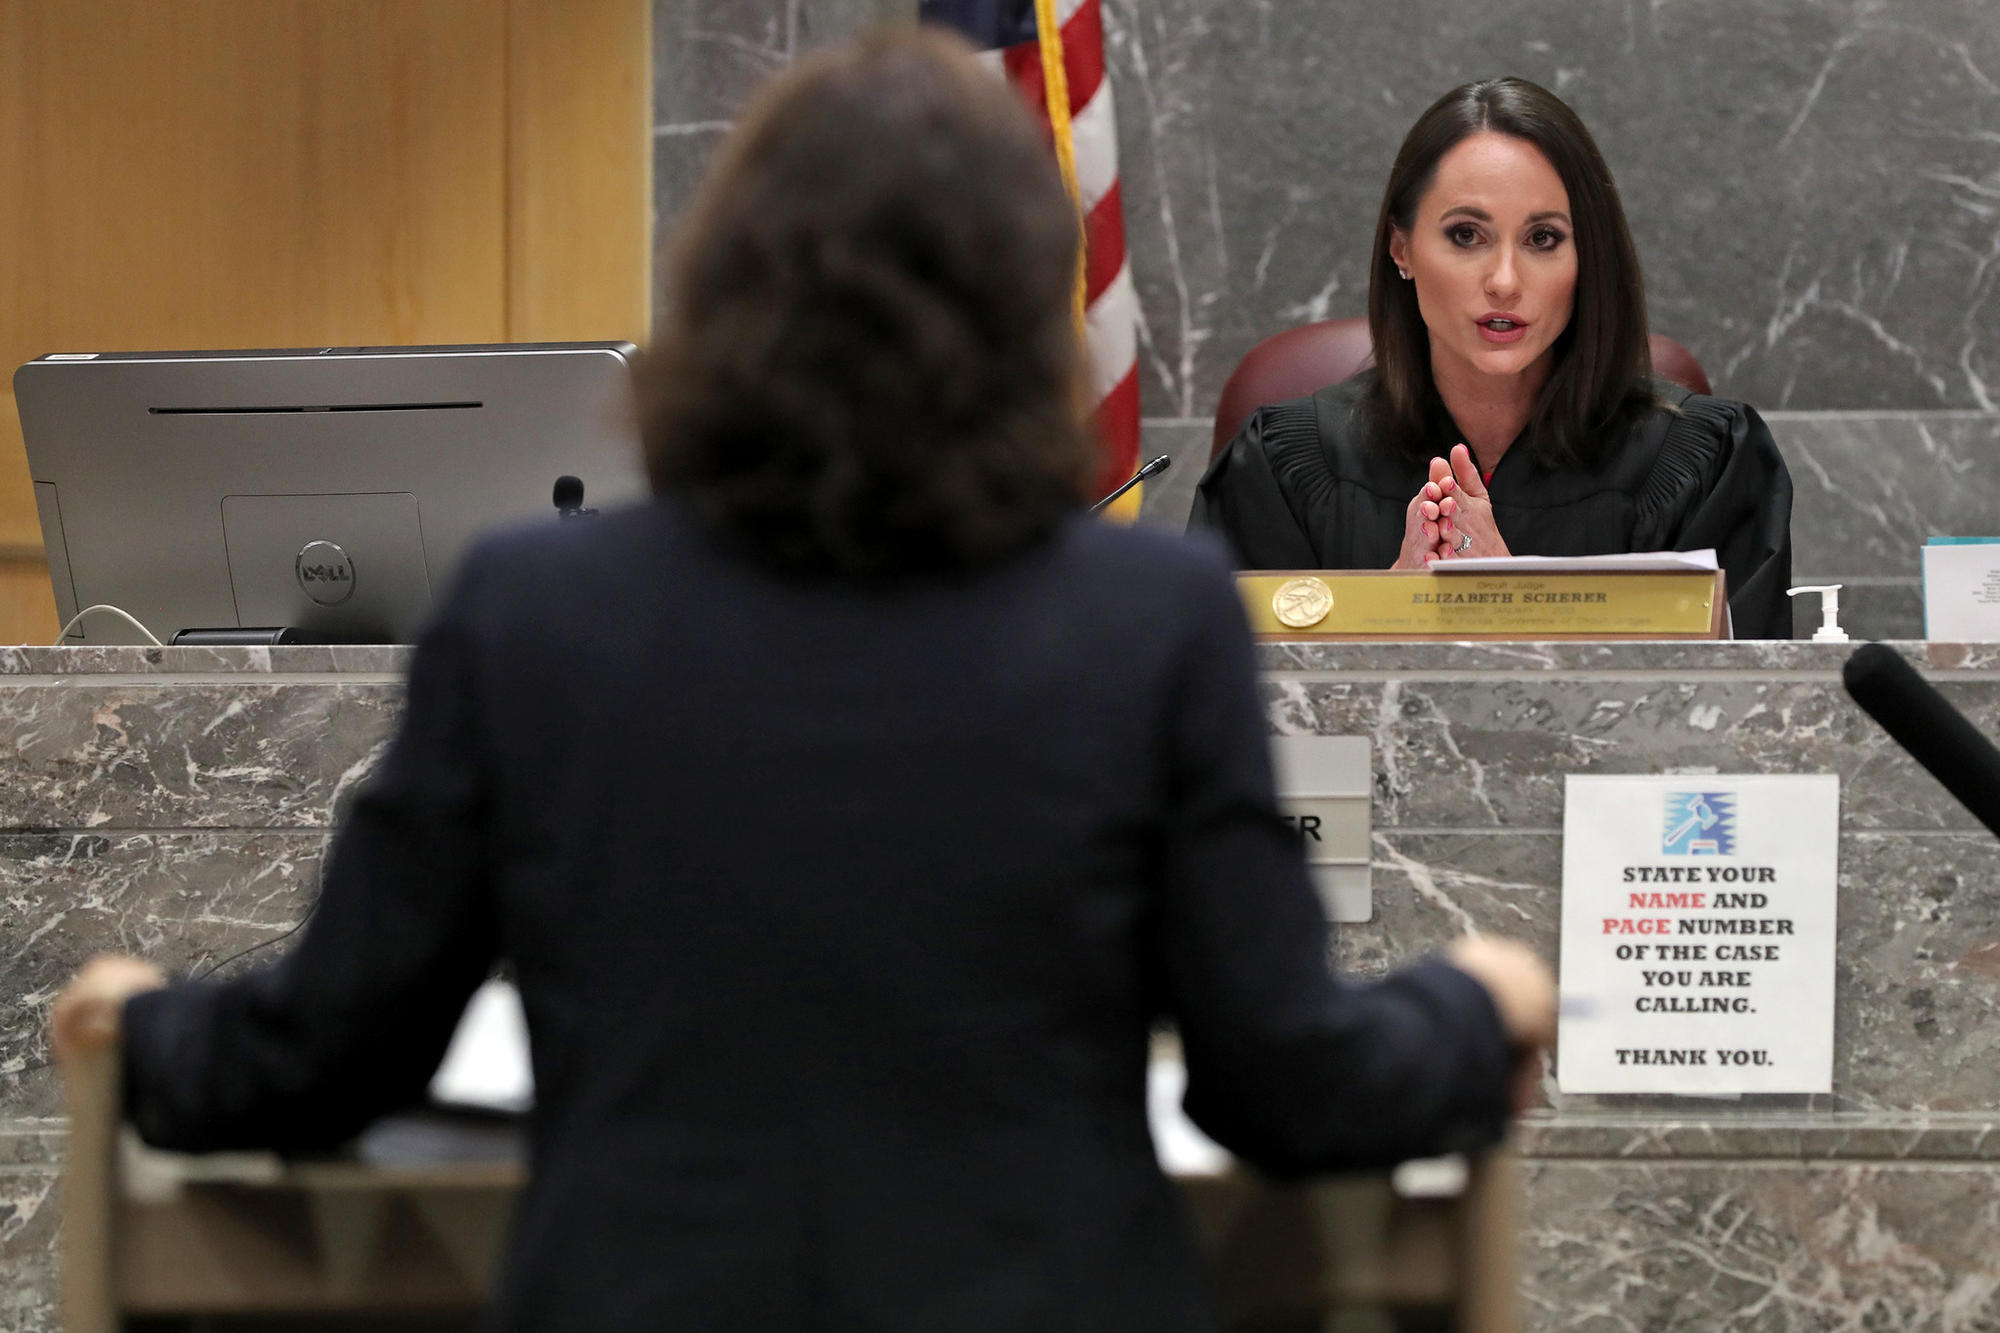 Judge blasts Sun Sentinel for publishing confidential information in Parkland school shooting case